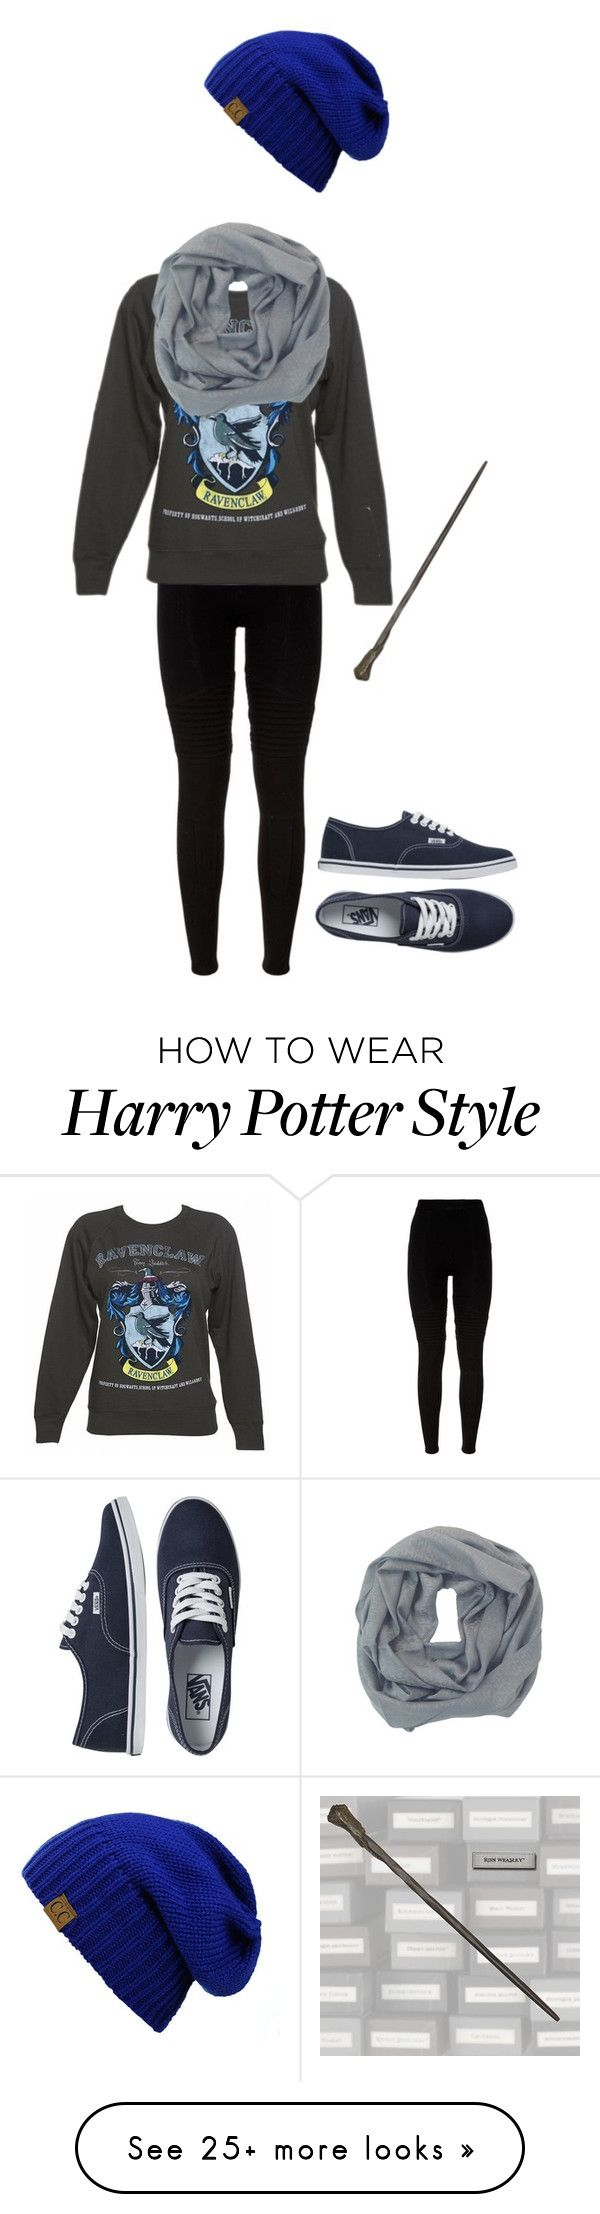 """""""Ravenclaw Quidditch Team"""" by natalia-imendoza on Polyvore featuring Givenchy, Vans and Tory Burch"""